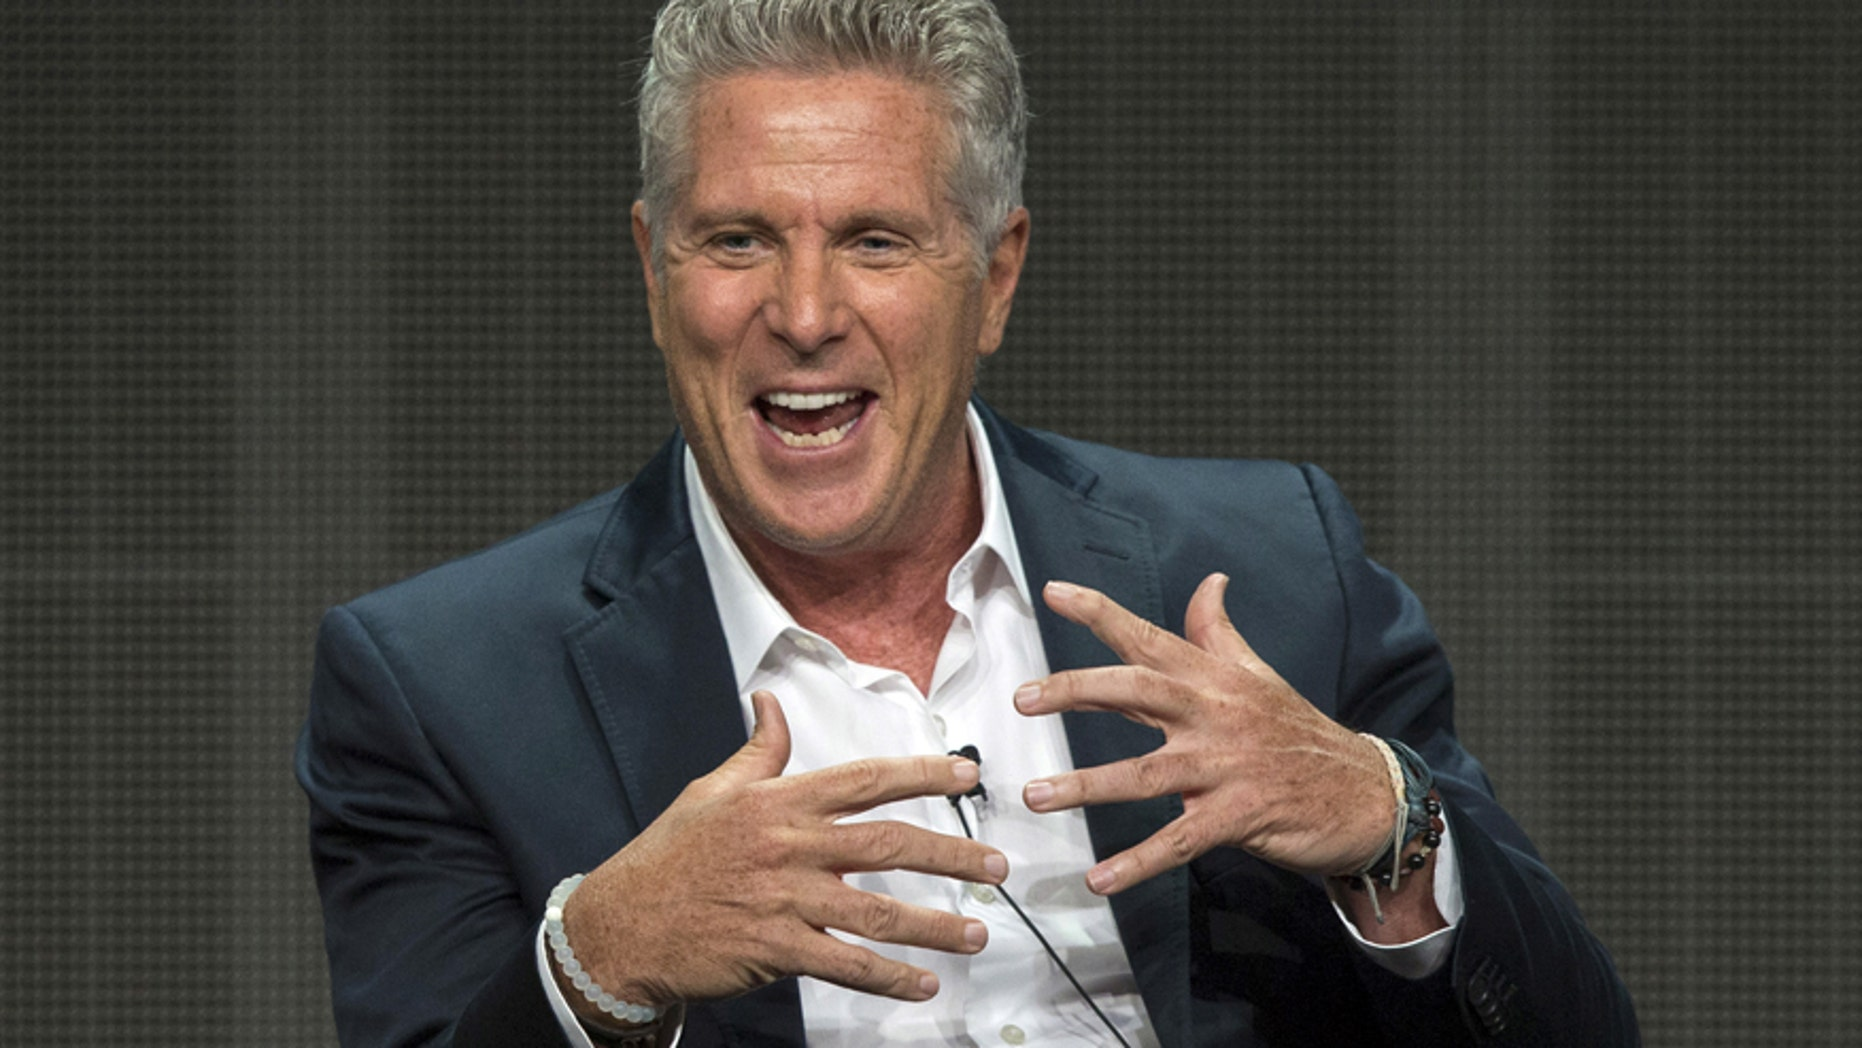 """Morning Joe"" contributor Donny Deutsch feels President Trump could start a civil war if he loses in 2020."